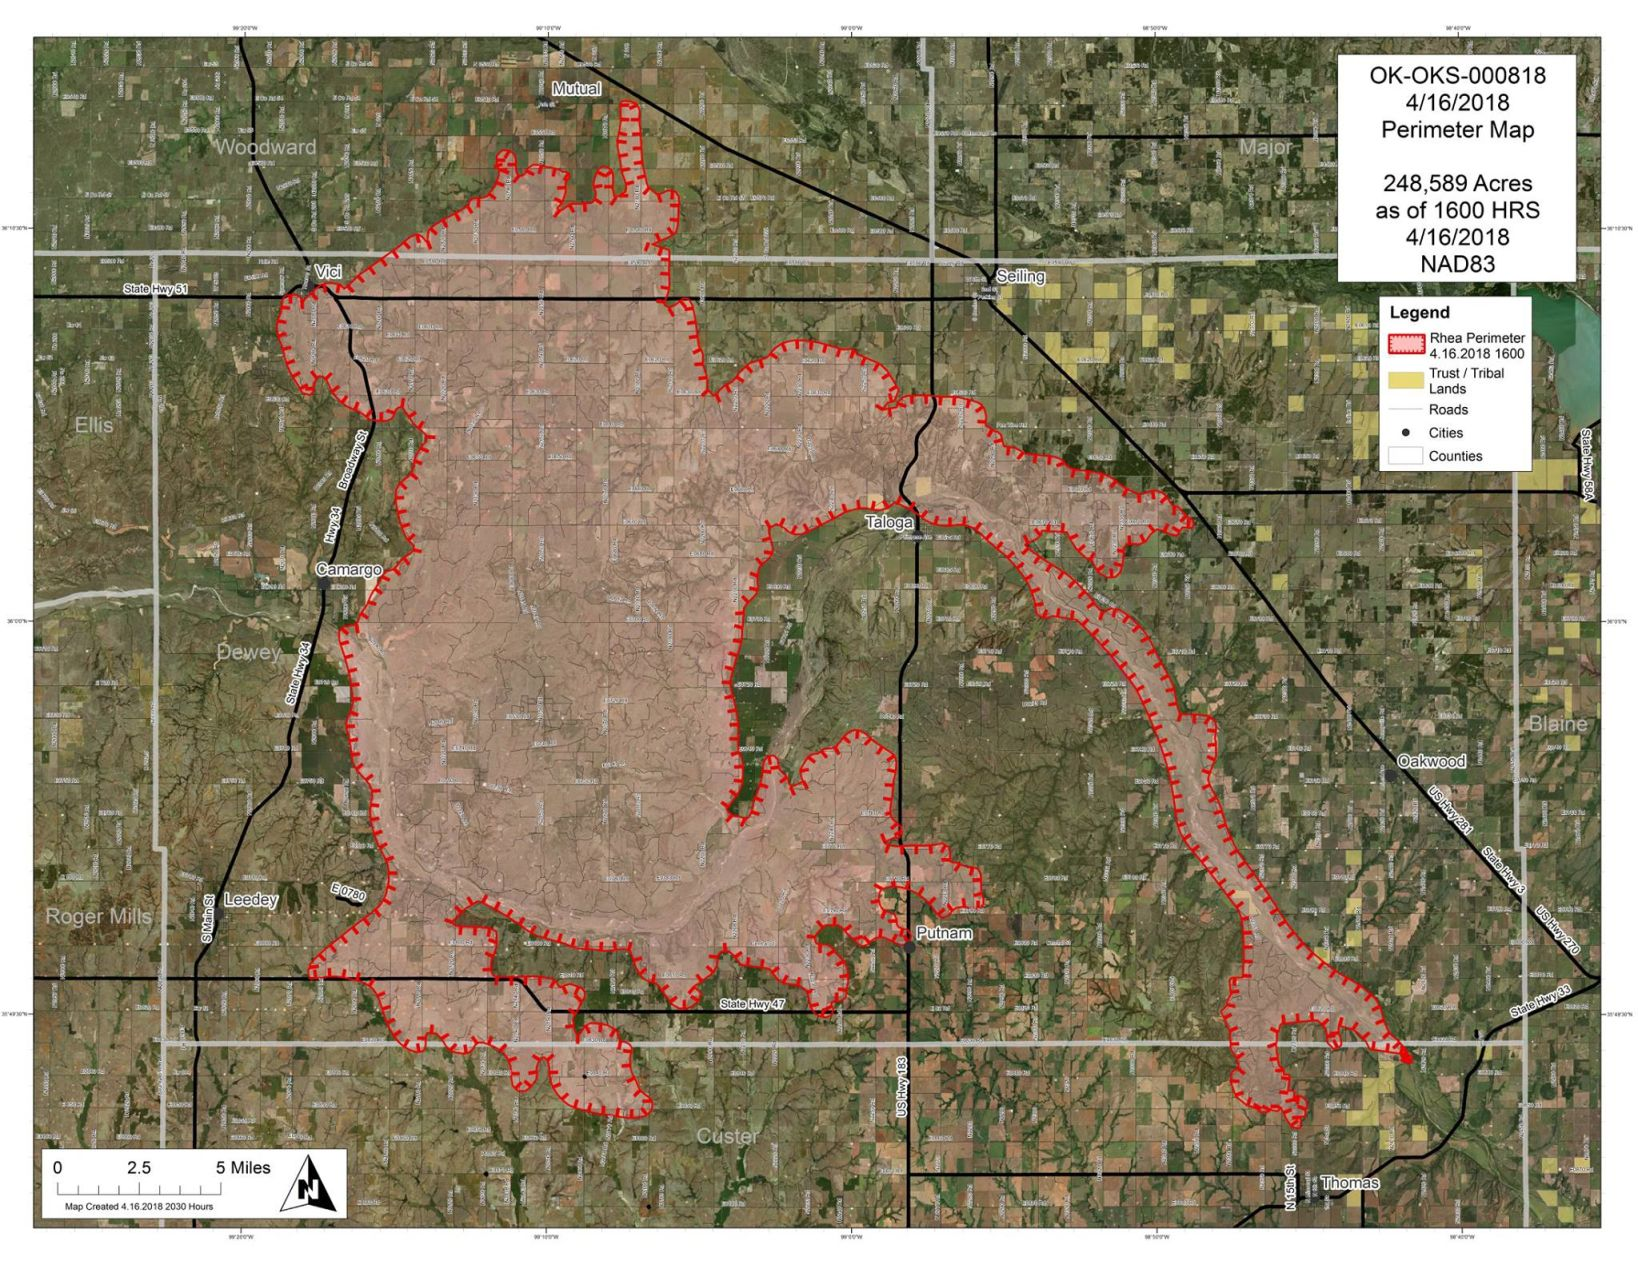 Officials predict worst fire conditions in 10